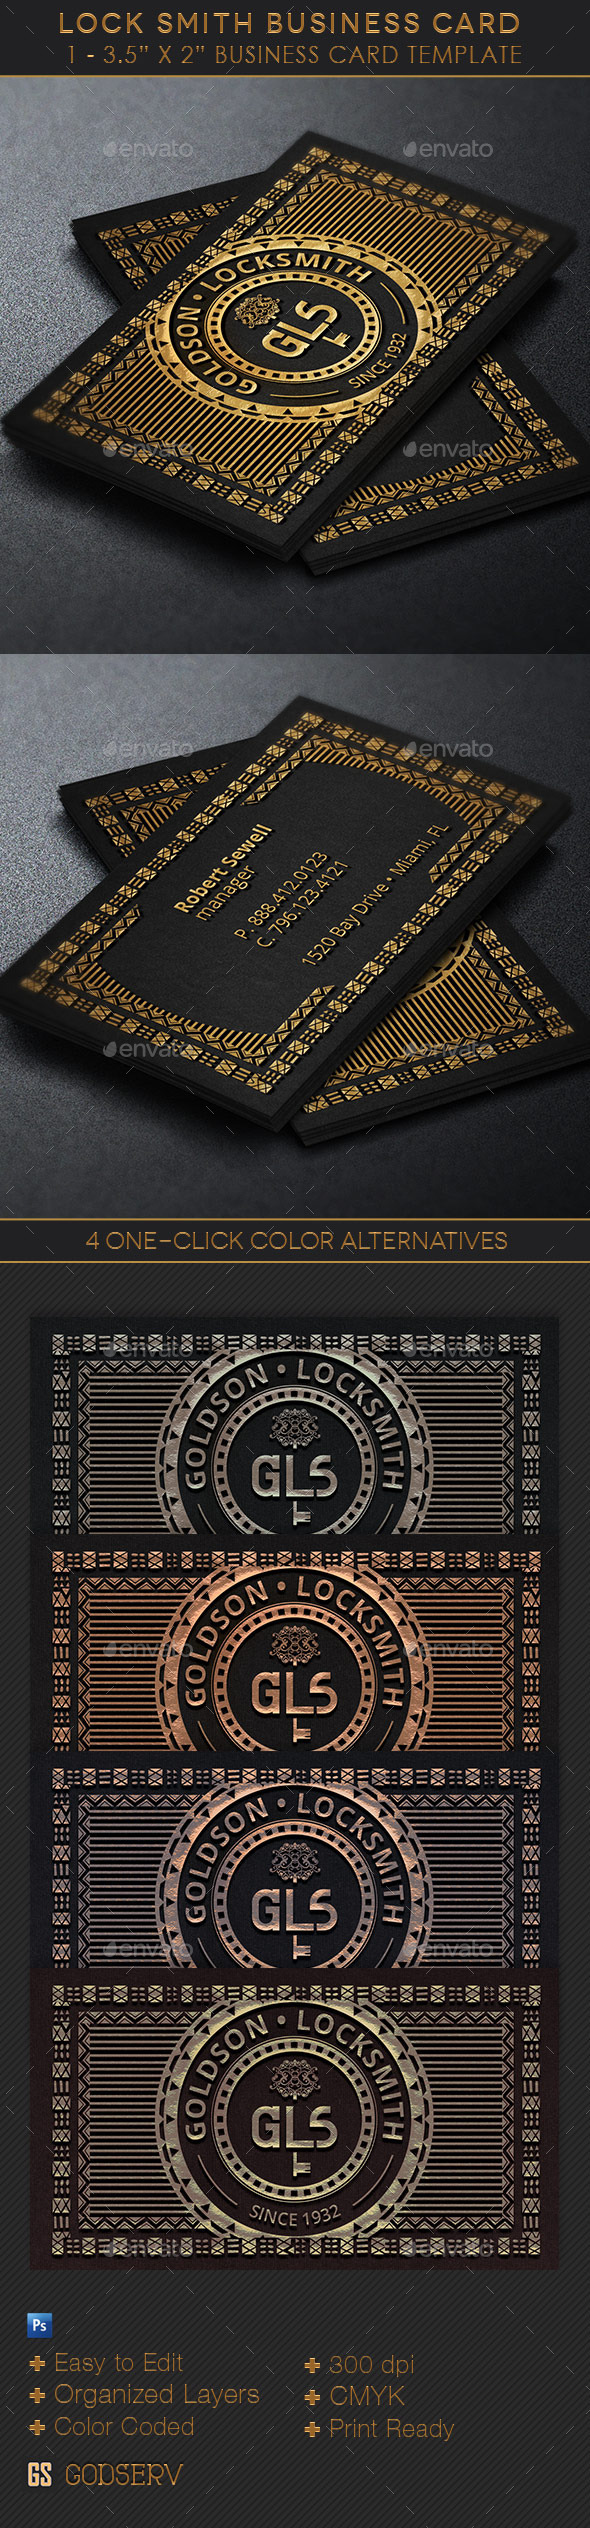 GraphicRiver Locksmith Business Card Template 11010124